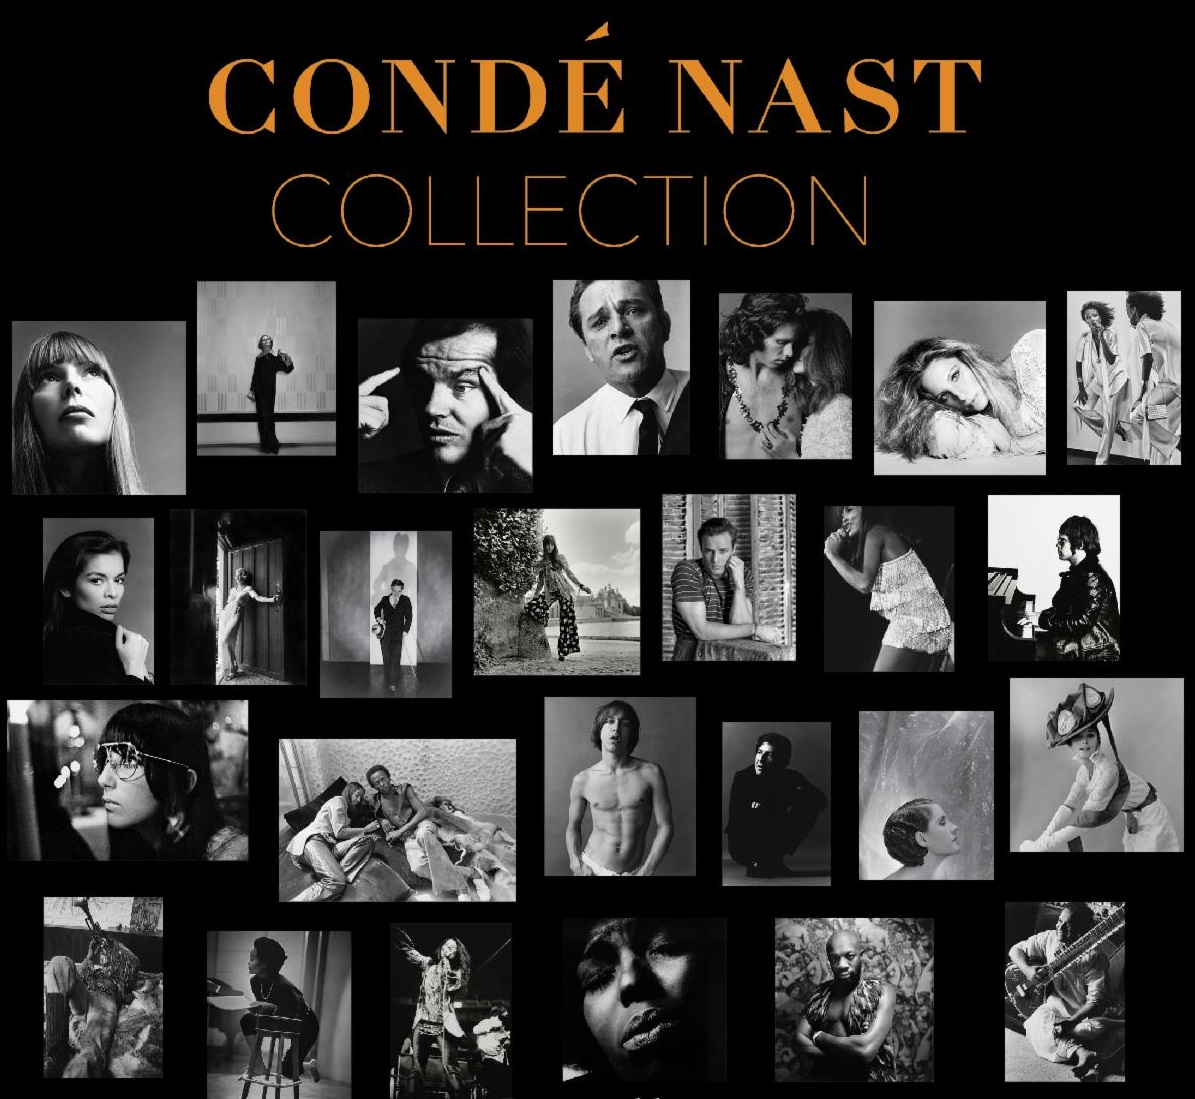 timothy white, conde nast, morrison hotel gallery